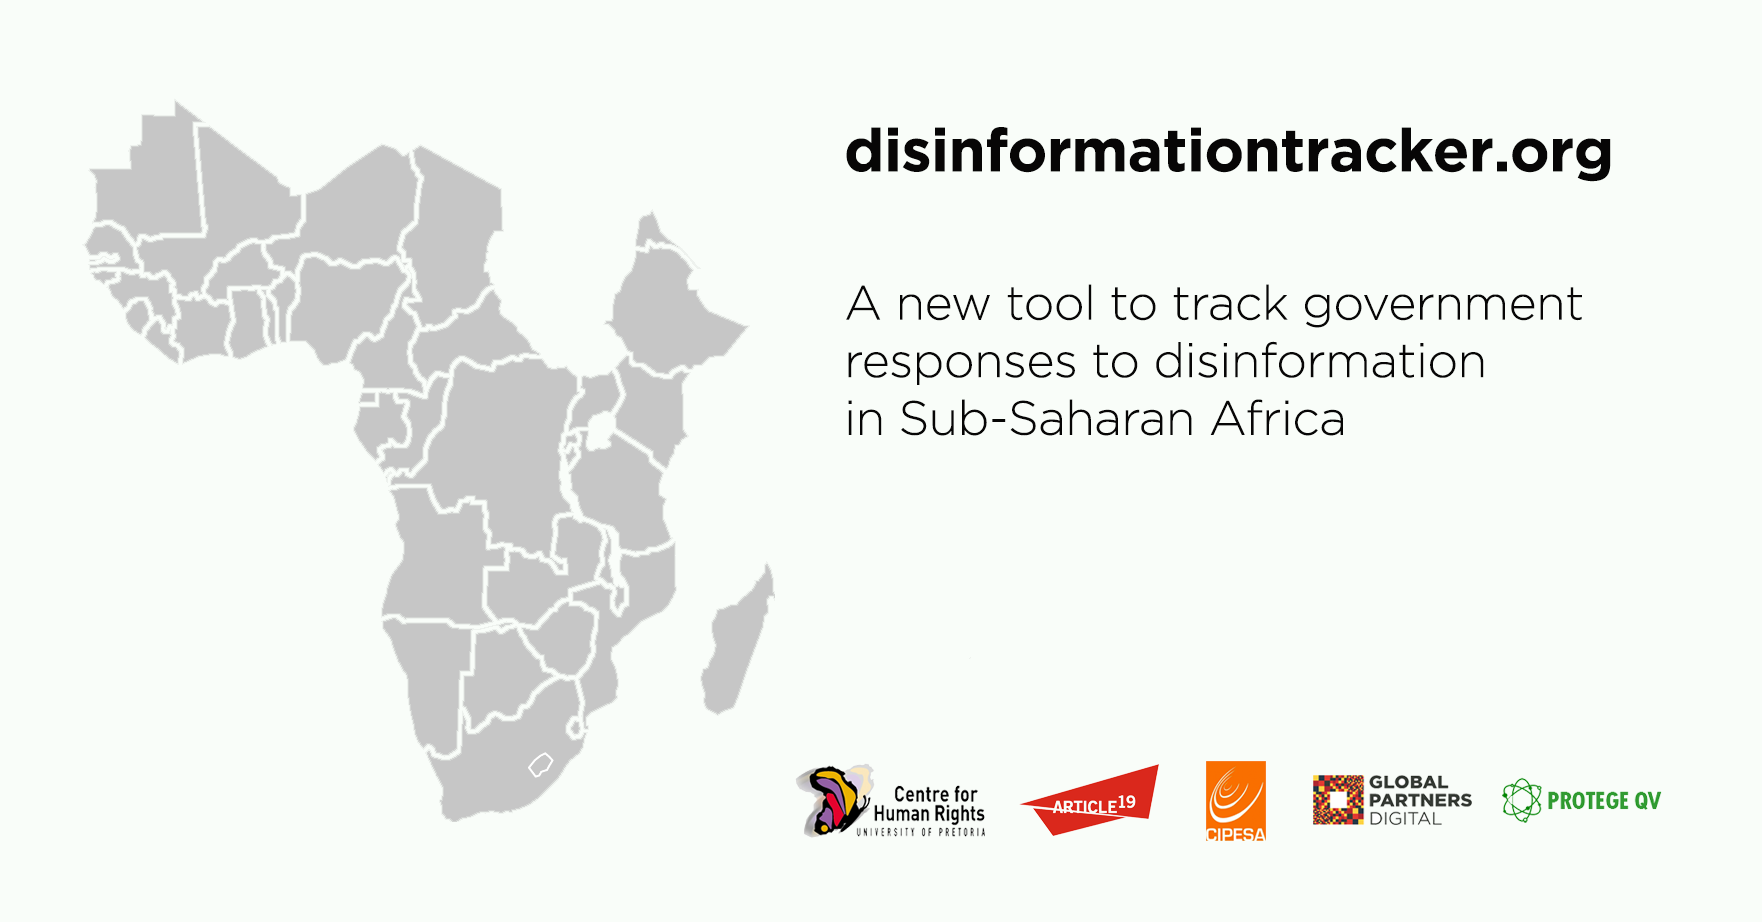 Coalition of Civil Society Groups Launches Tool to Track Responses to Disinformation in Sub Saharan Africa